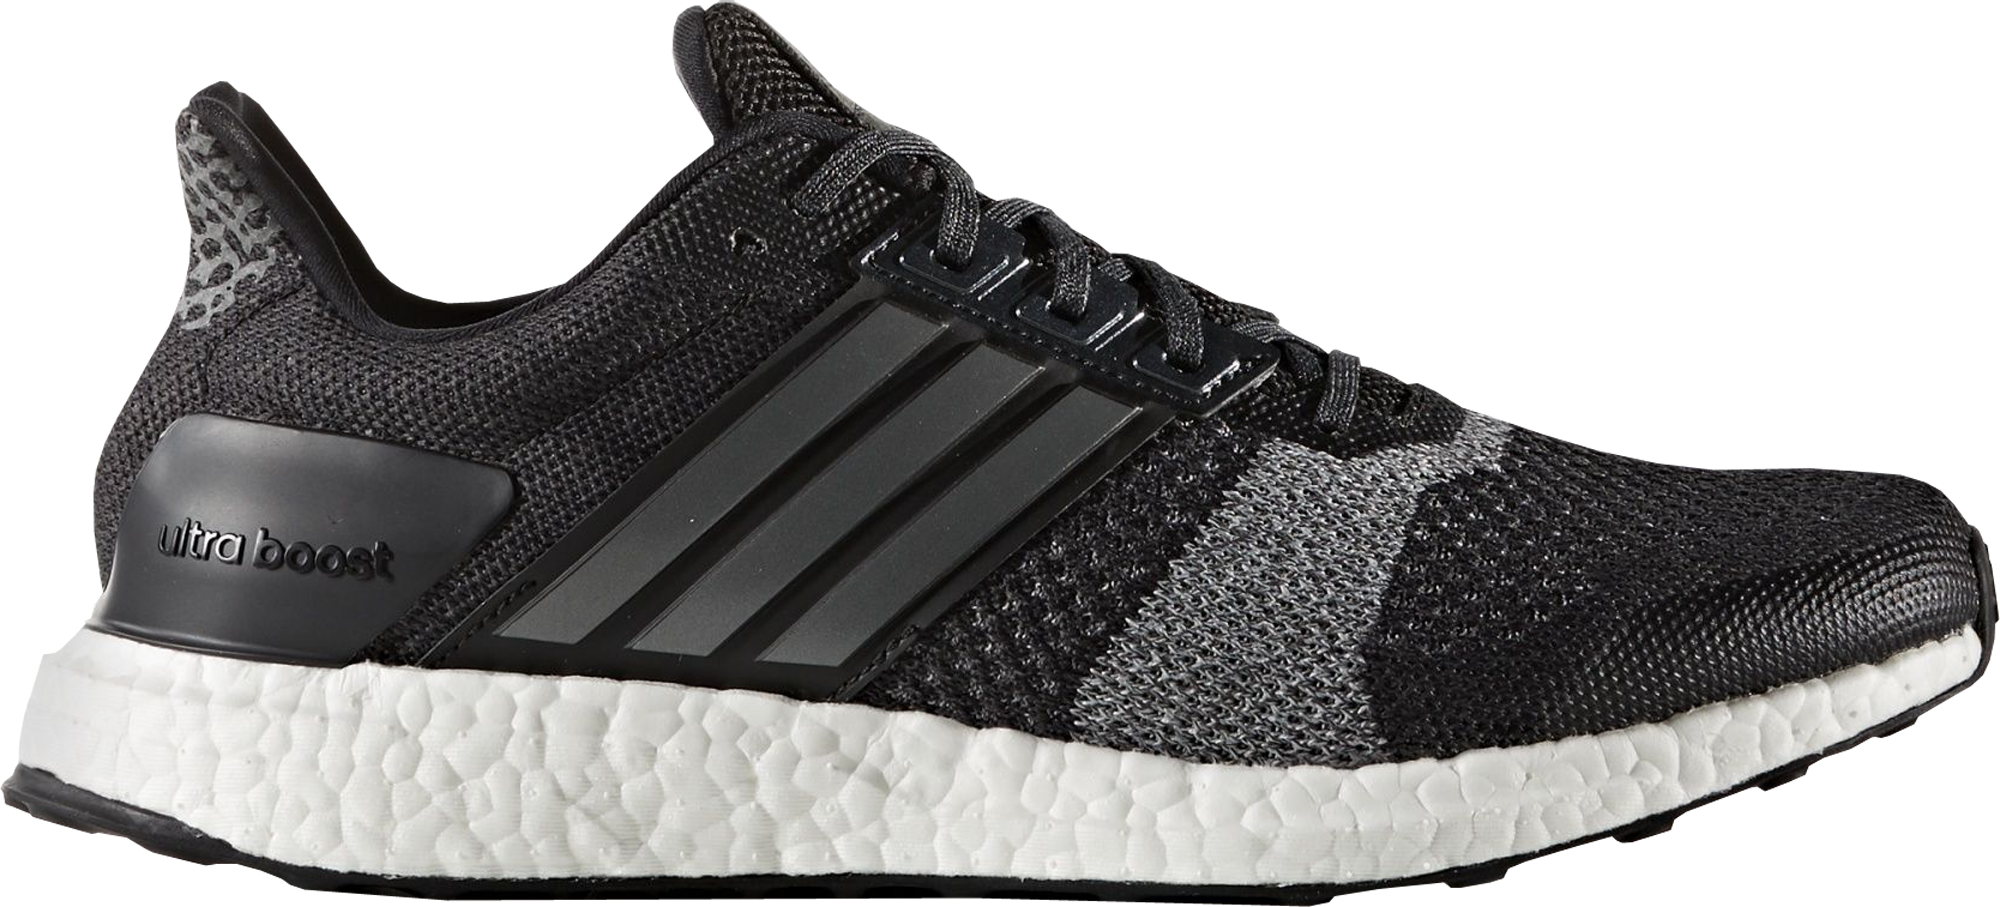 a0a4b913638f ... discount code for adidas ultra boost st black grey 98e4f eacd2